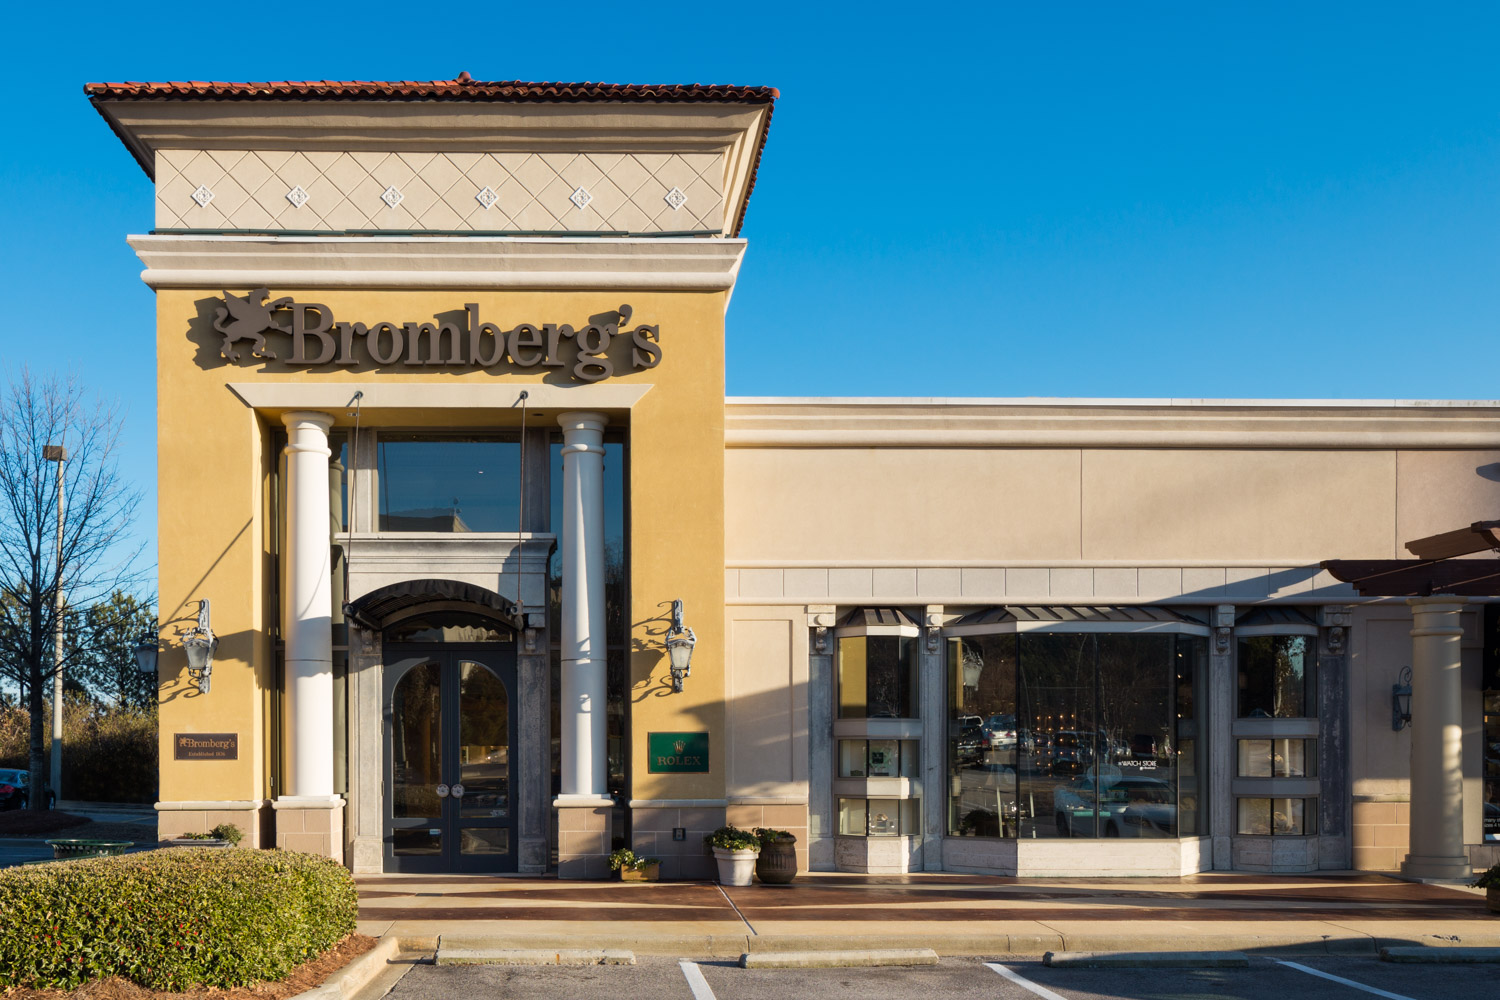 Brombergs - Birmingham AL Jewelry Store - Google Virtual Tour2521.jpg